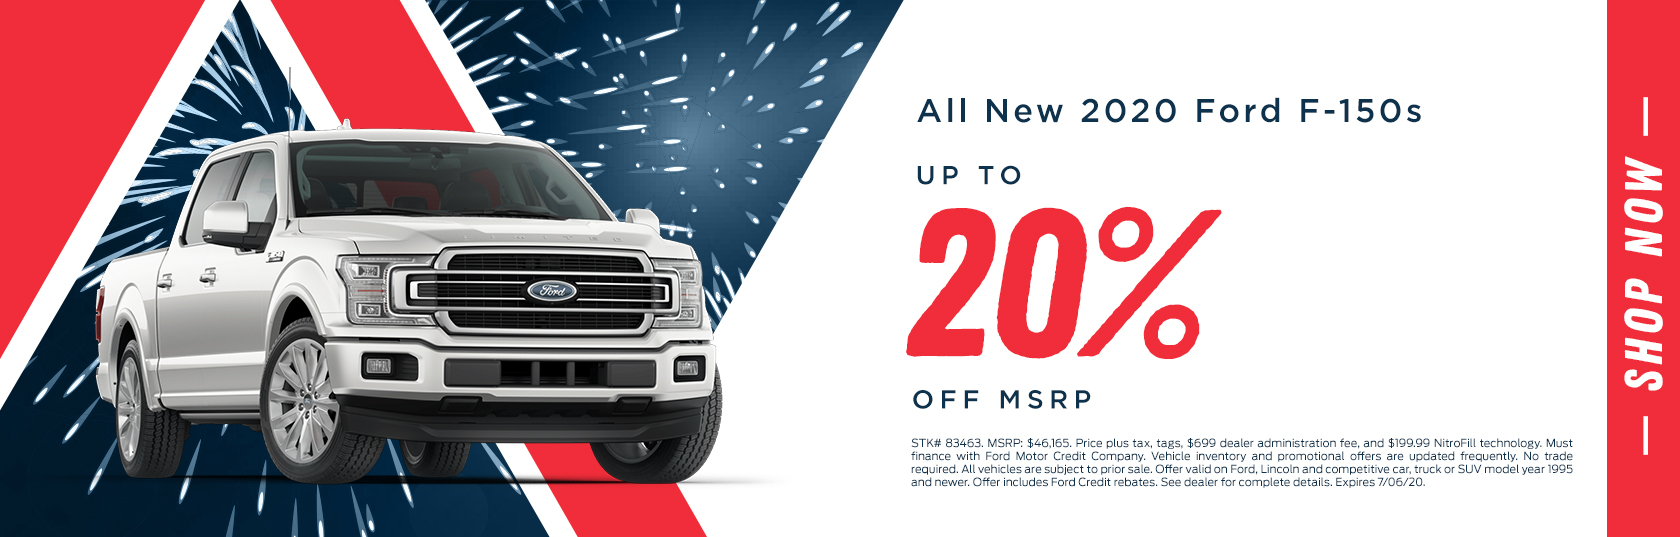 All New 2020 Ford F-150s Up To 20% Off MSRP